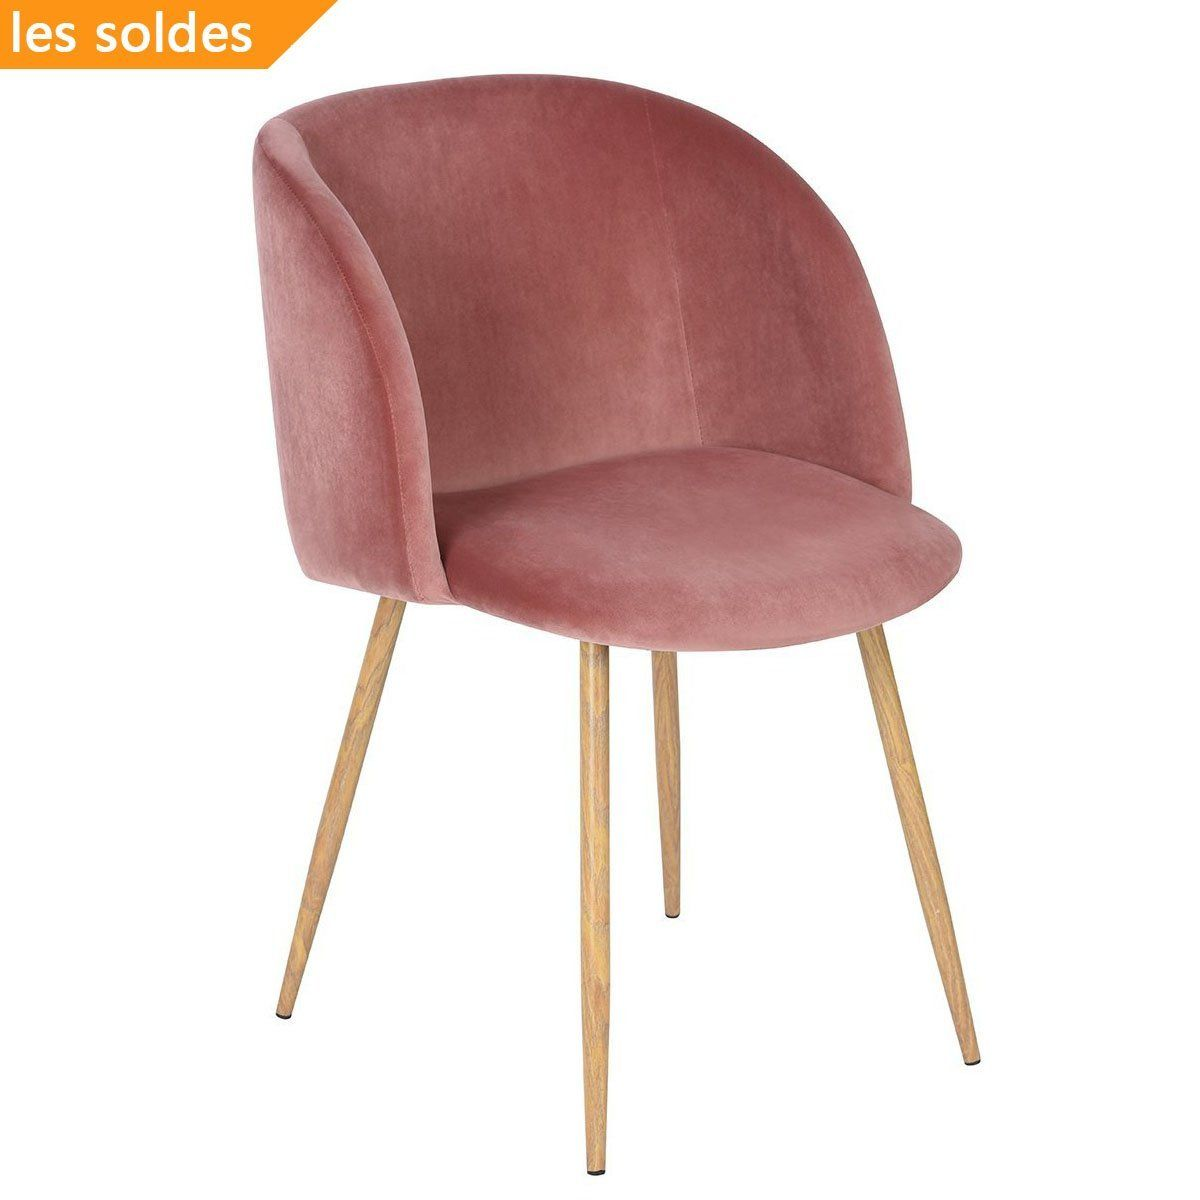 Retro Sessel Bilder 68 69 1er Set Vintager Retro Sessel Polstersessel Samt Lounge